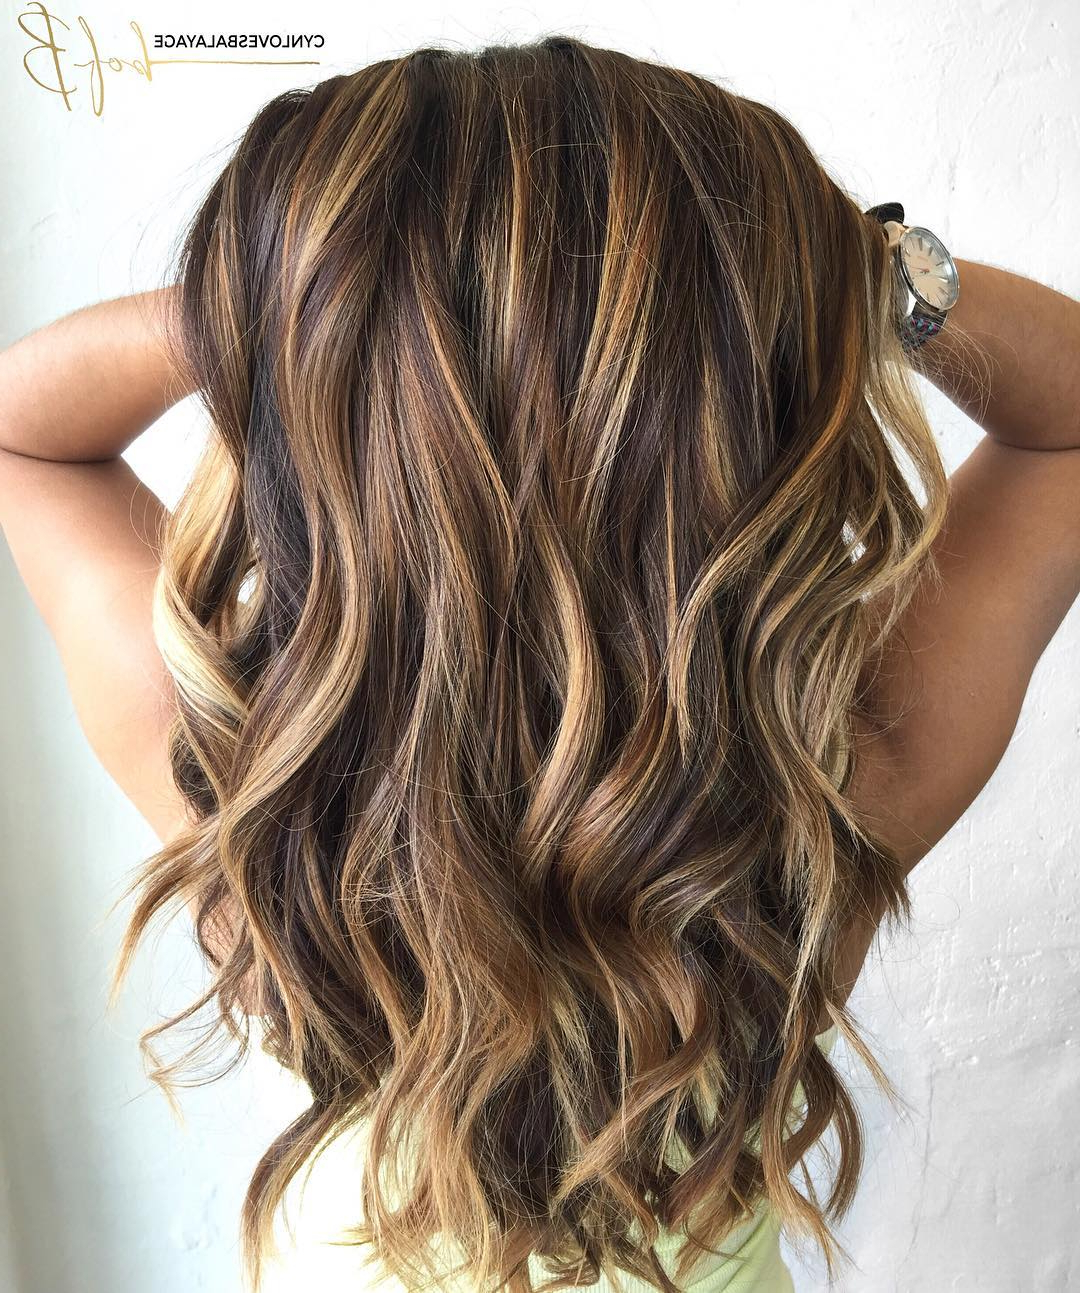 60 Looks With Caramel Highlights On Brown And Dark Brown Hair Within Angelic Blonde Balayage Bob Hairstyles With Curls (View 14 of 25)